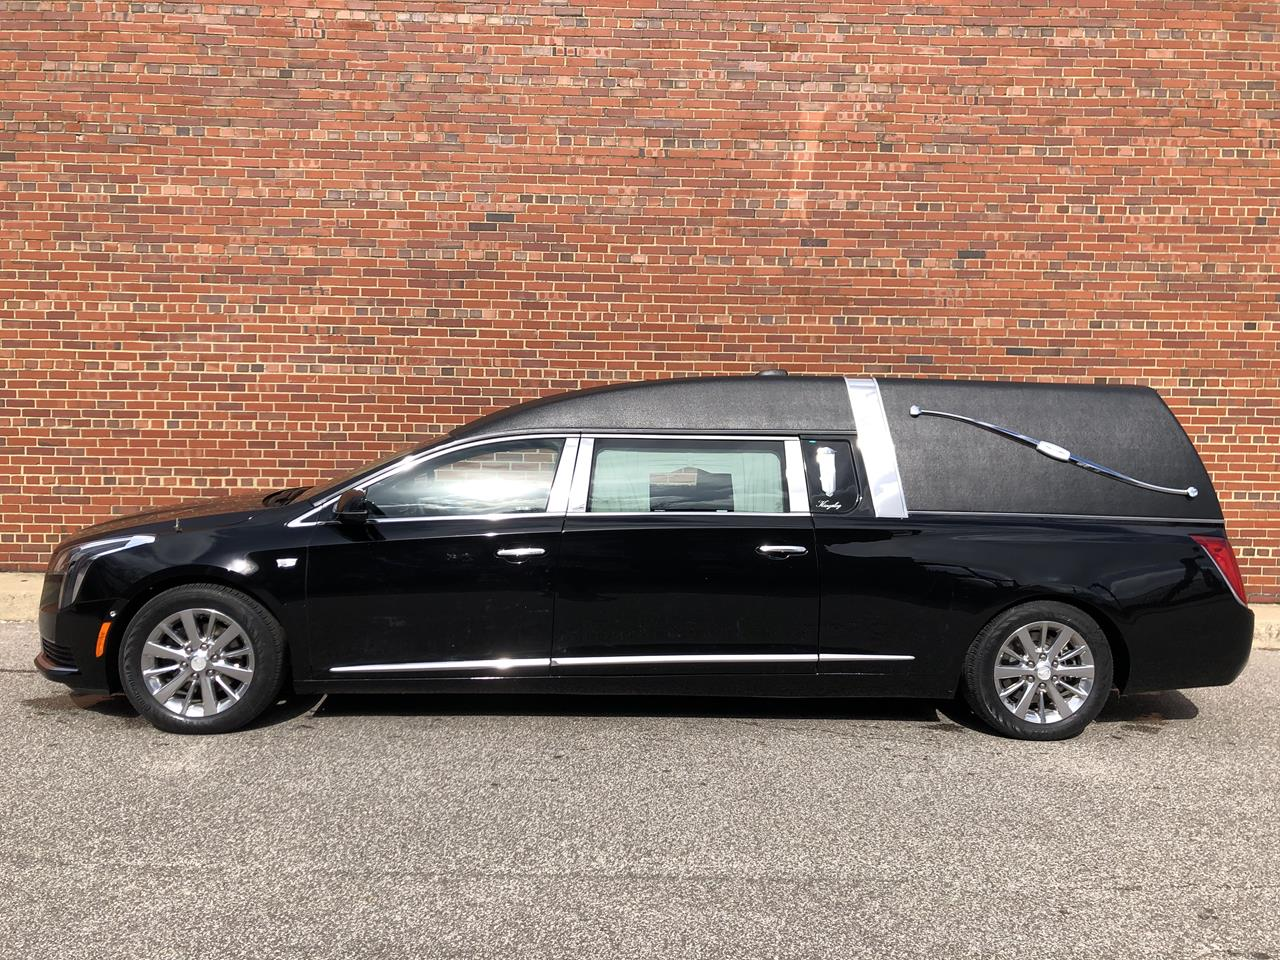 2019 Cadillac Eagle Kingsley Hearse 19 17